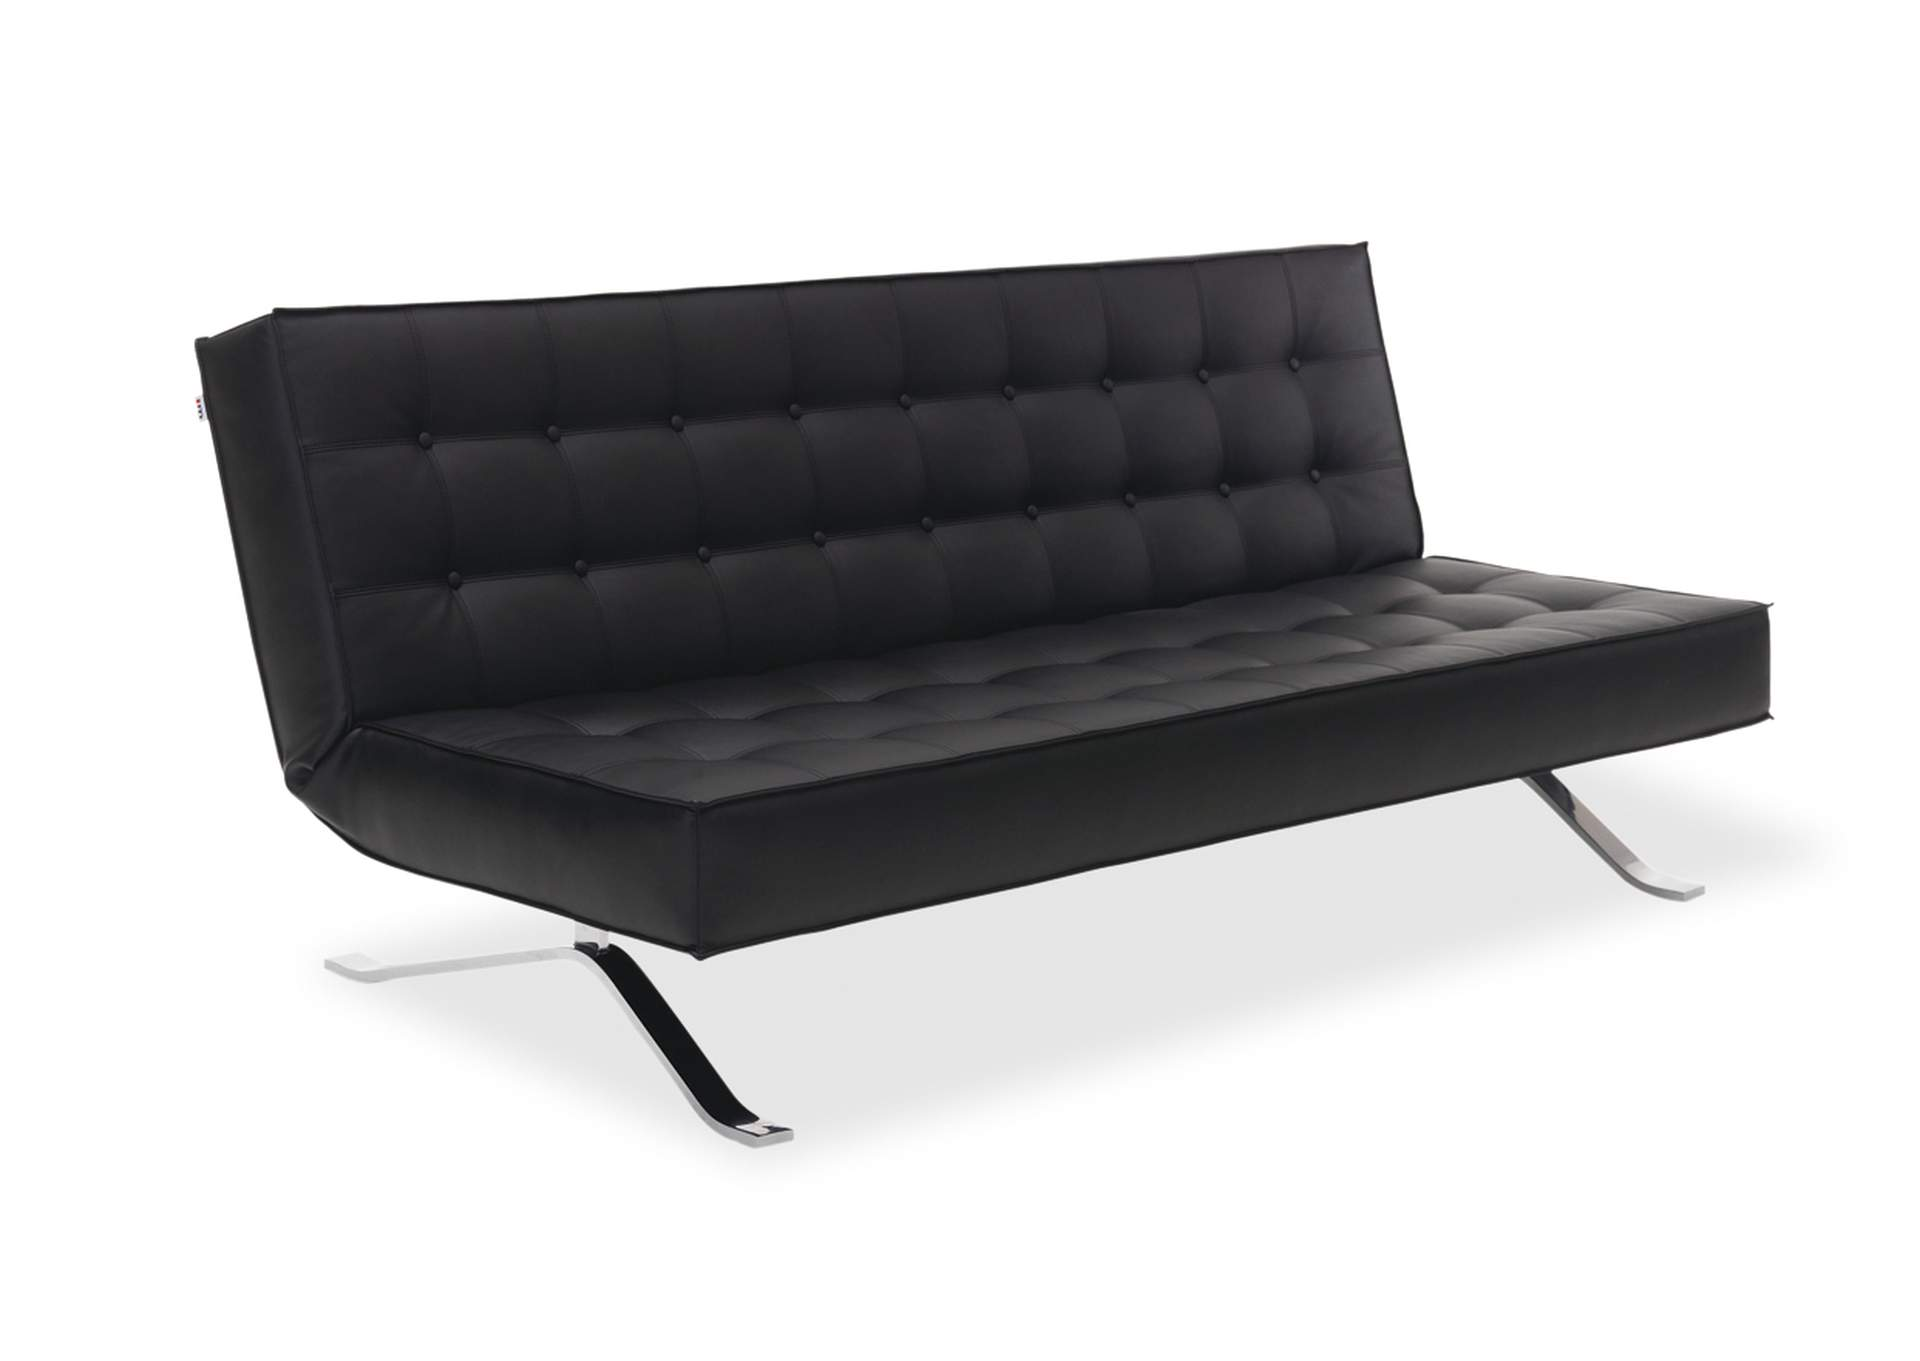 Premium Sofa Bed JK044-3 in Black Leatherette,J&M Furniture